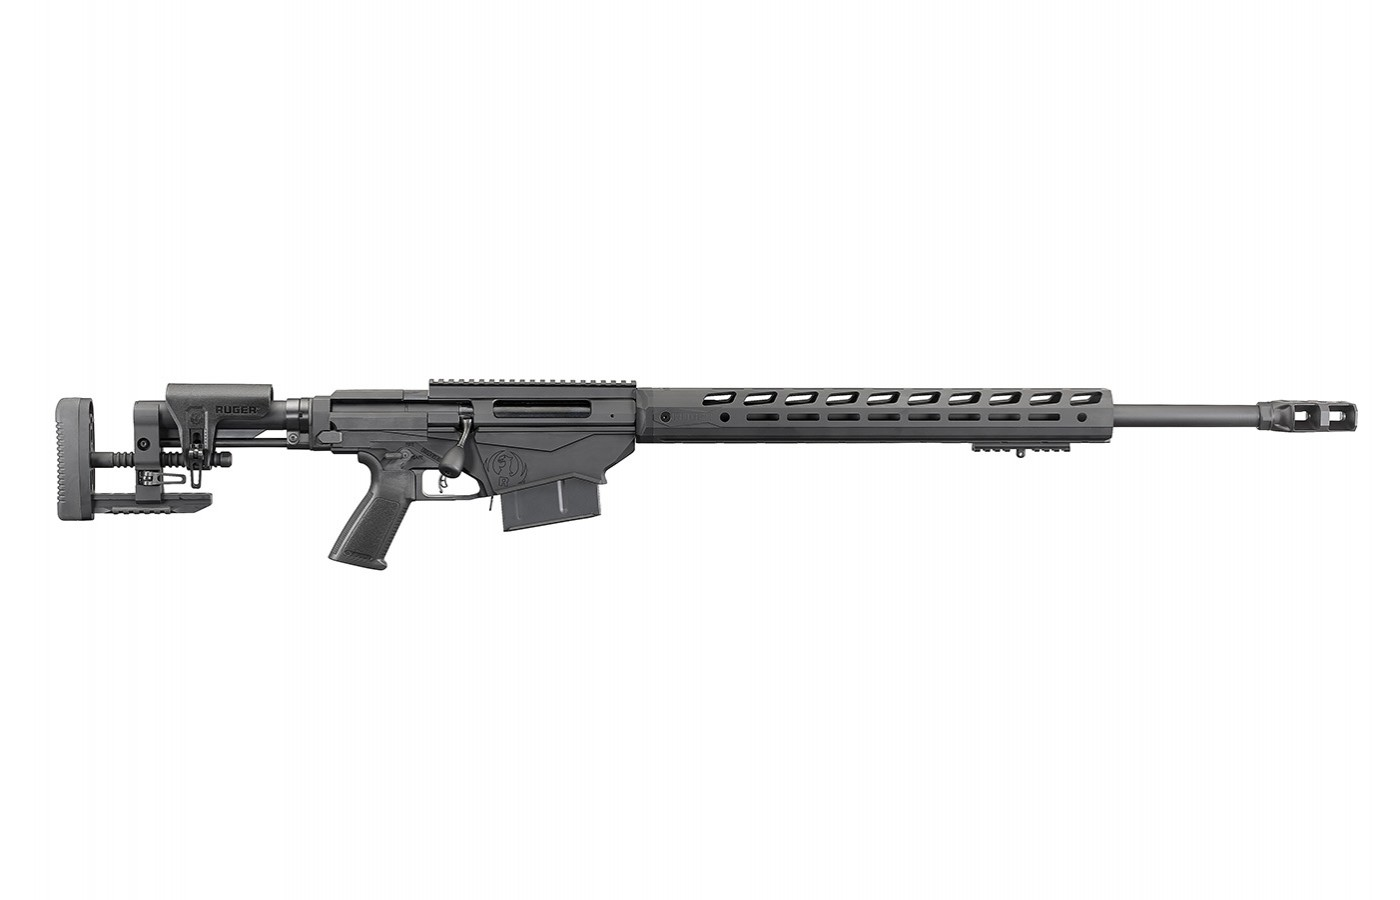 This high-quality rifle is available for a lot less than its competitors